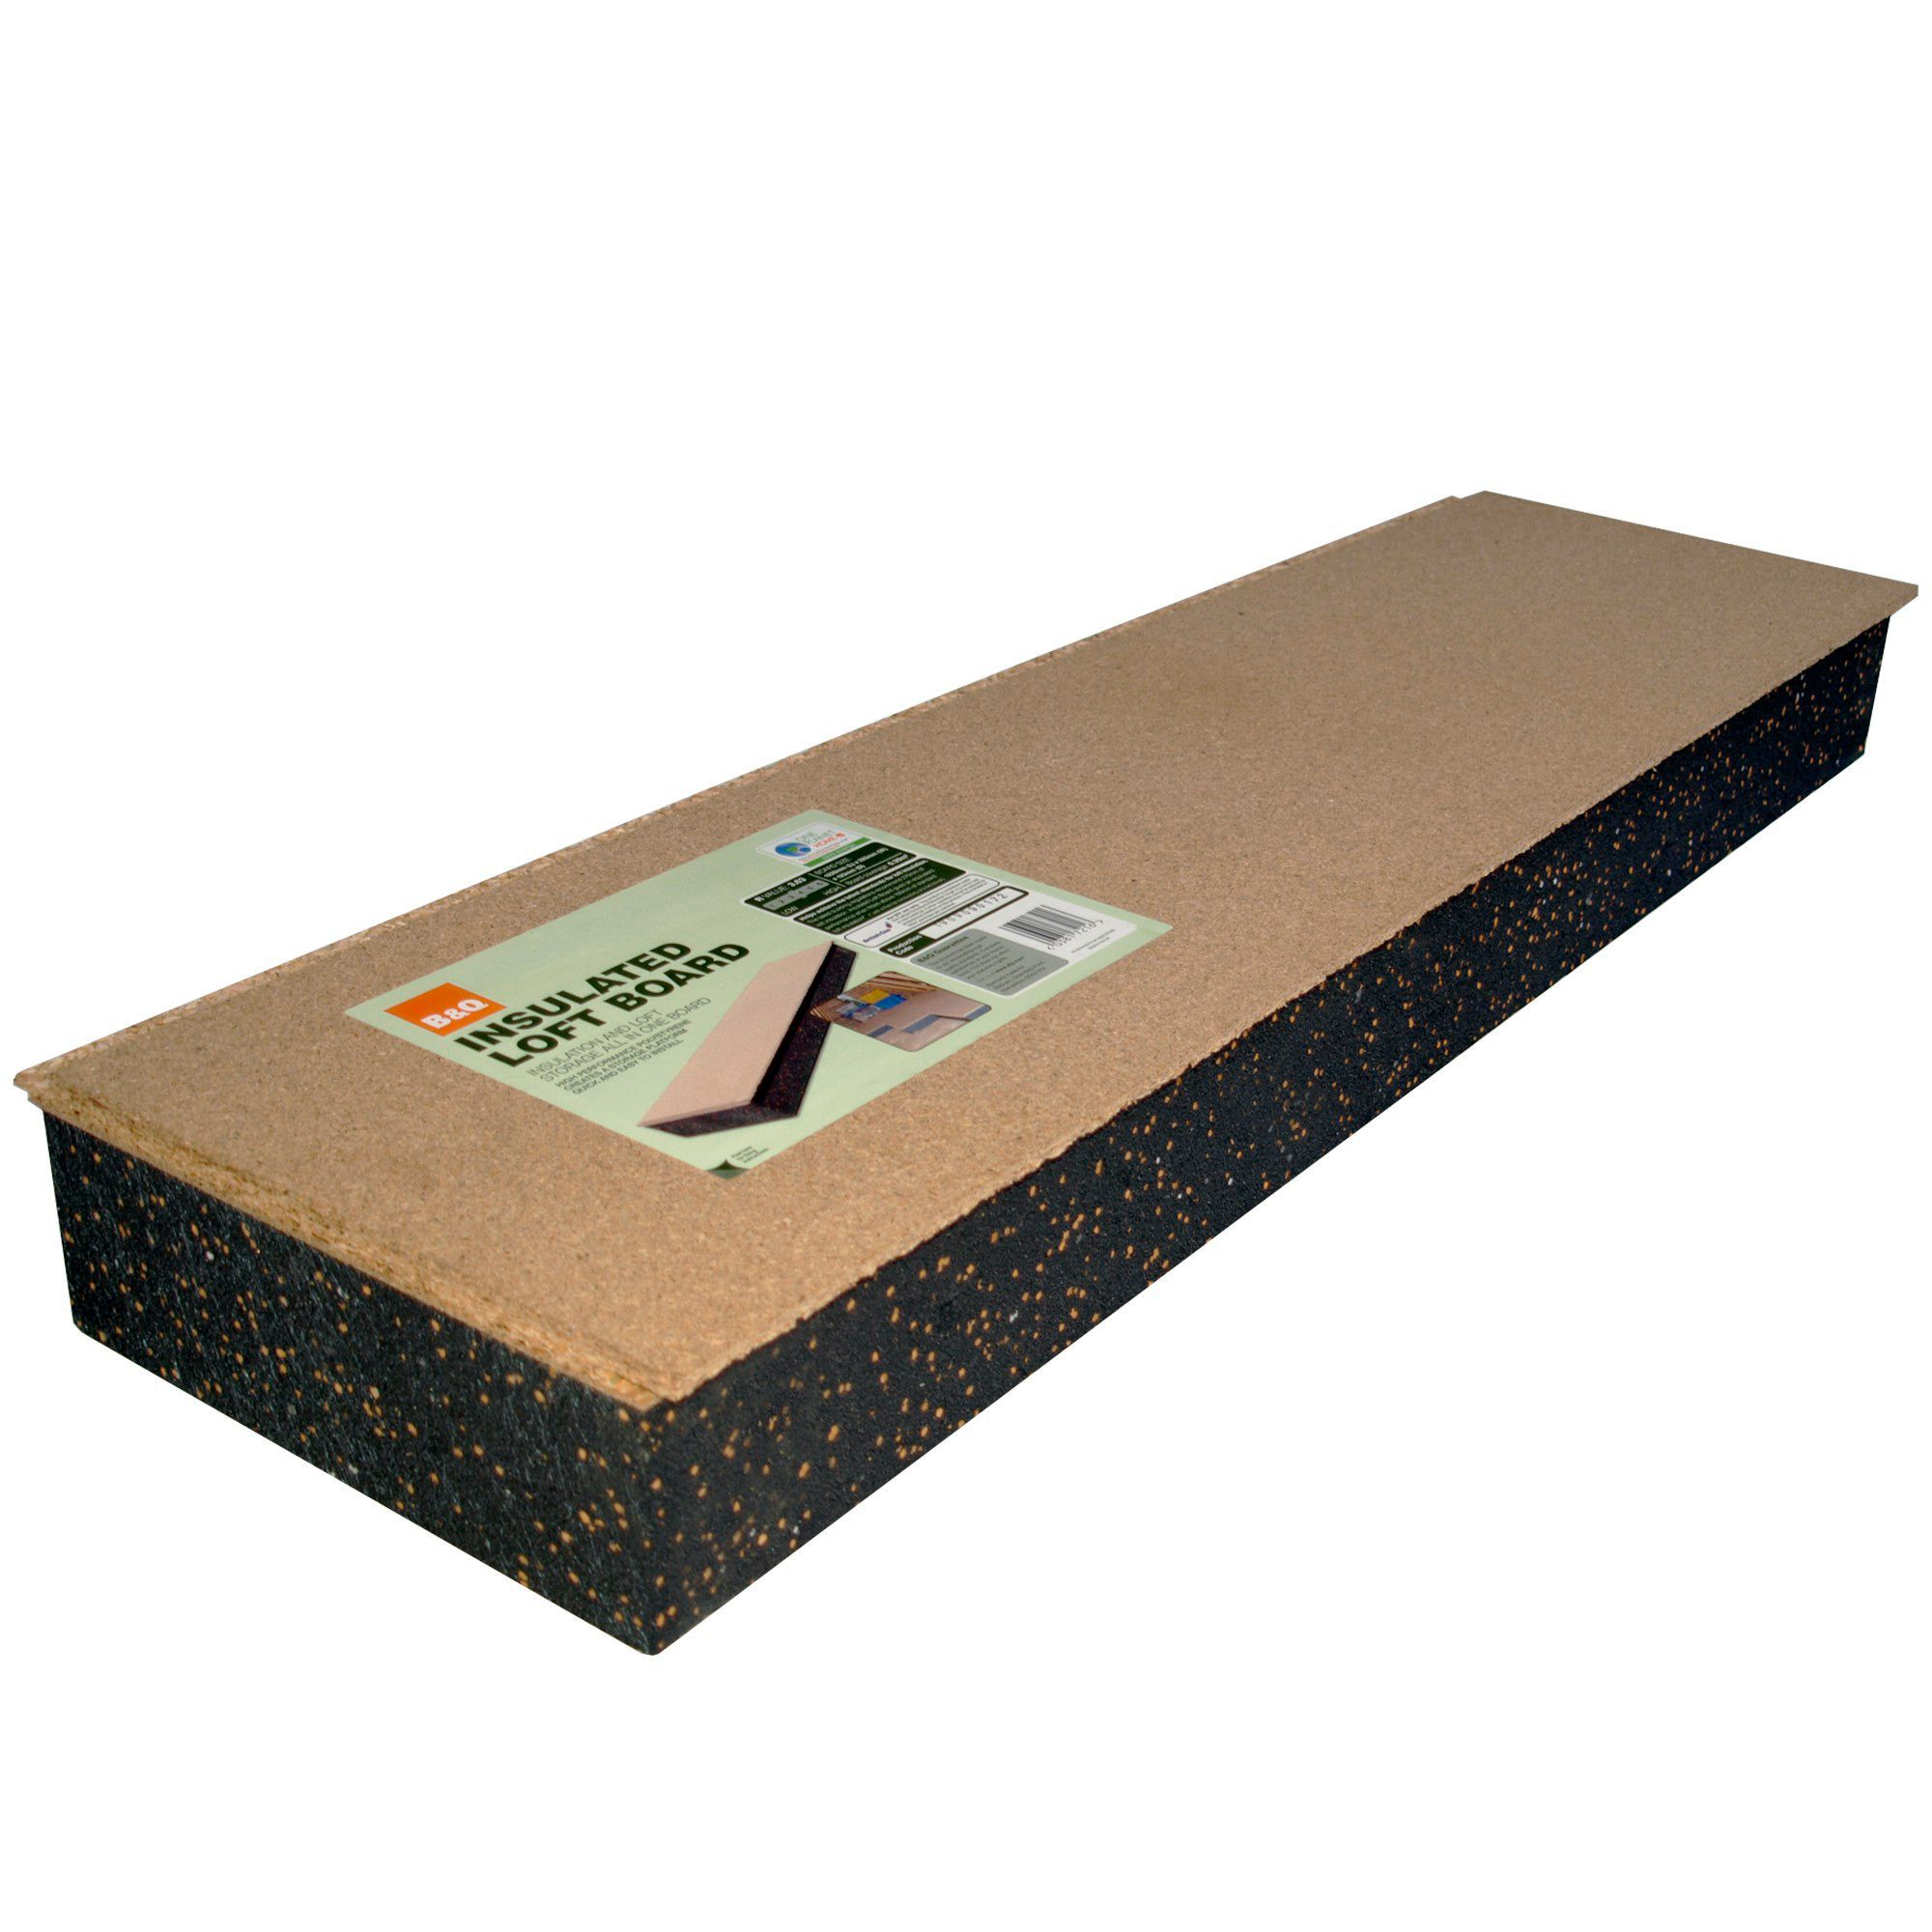 BampQ Insulation Board 1220mm 320mm 123mm Departments